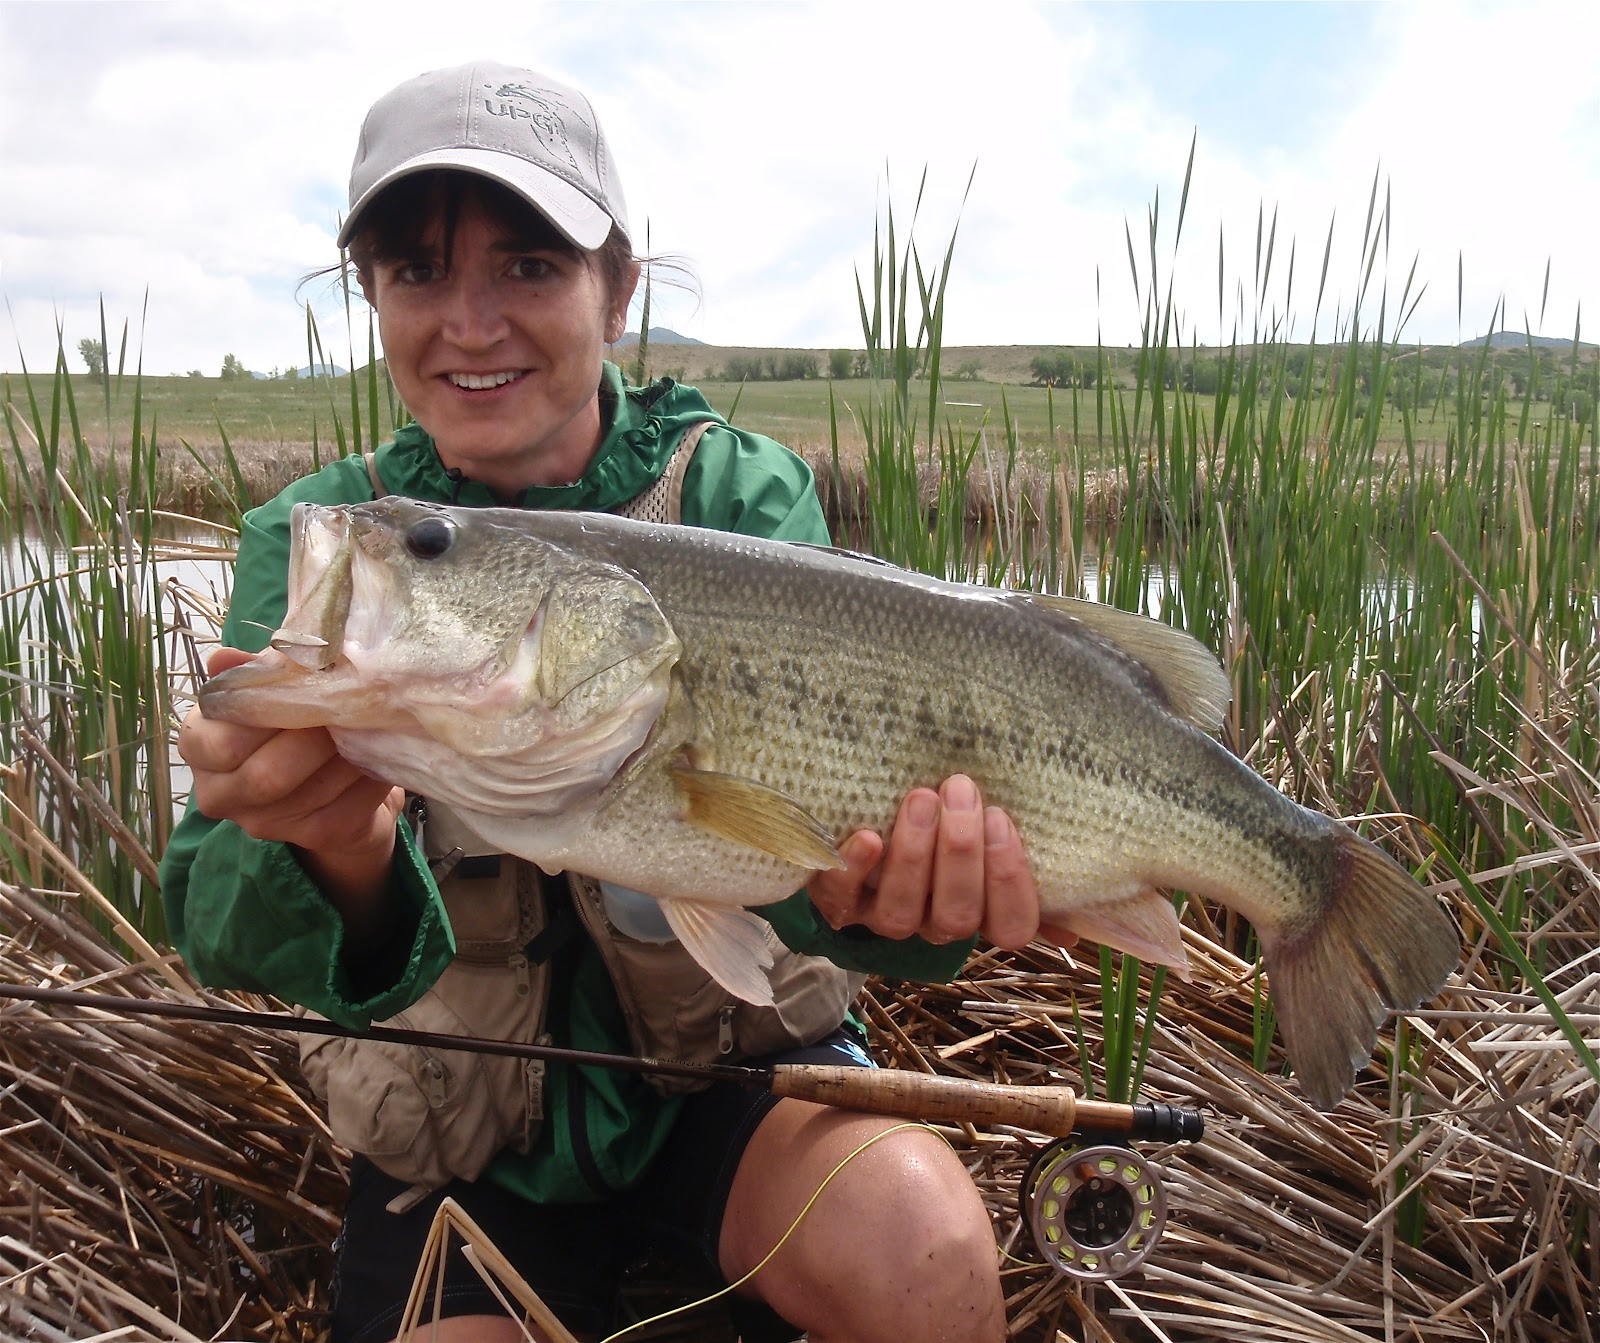 Colorado Fly Fishing Reports: Big Bass On Small Flies